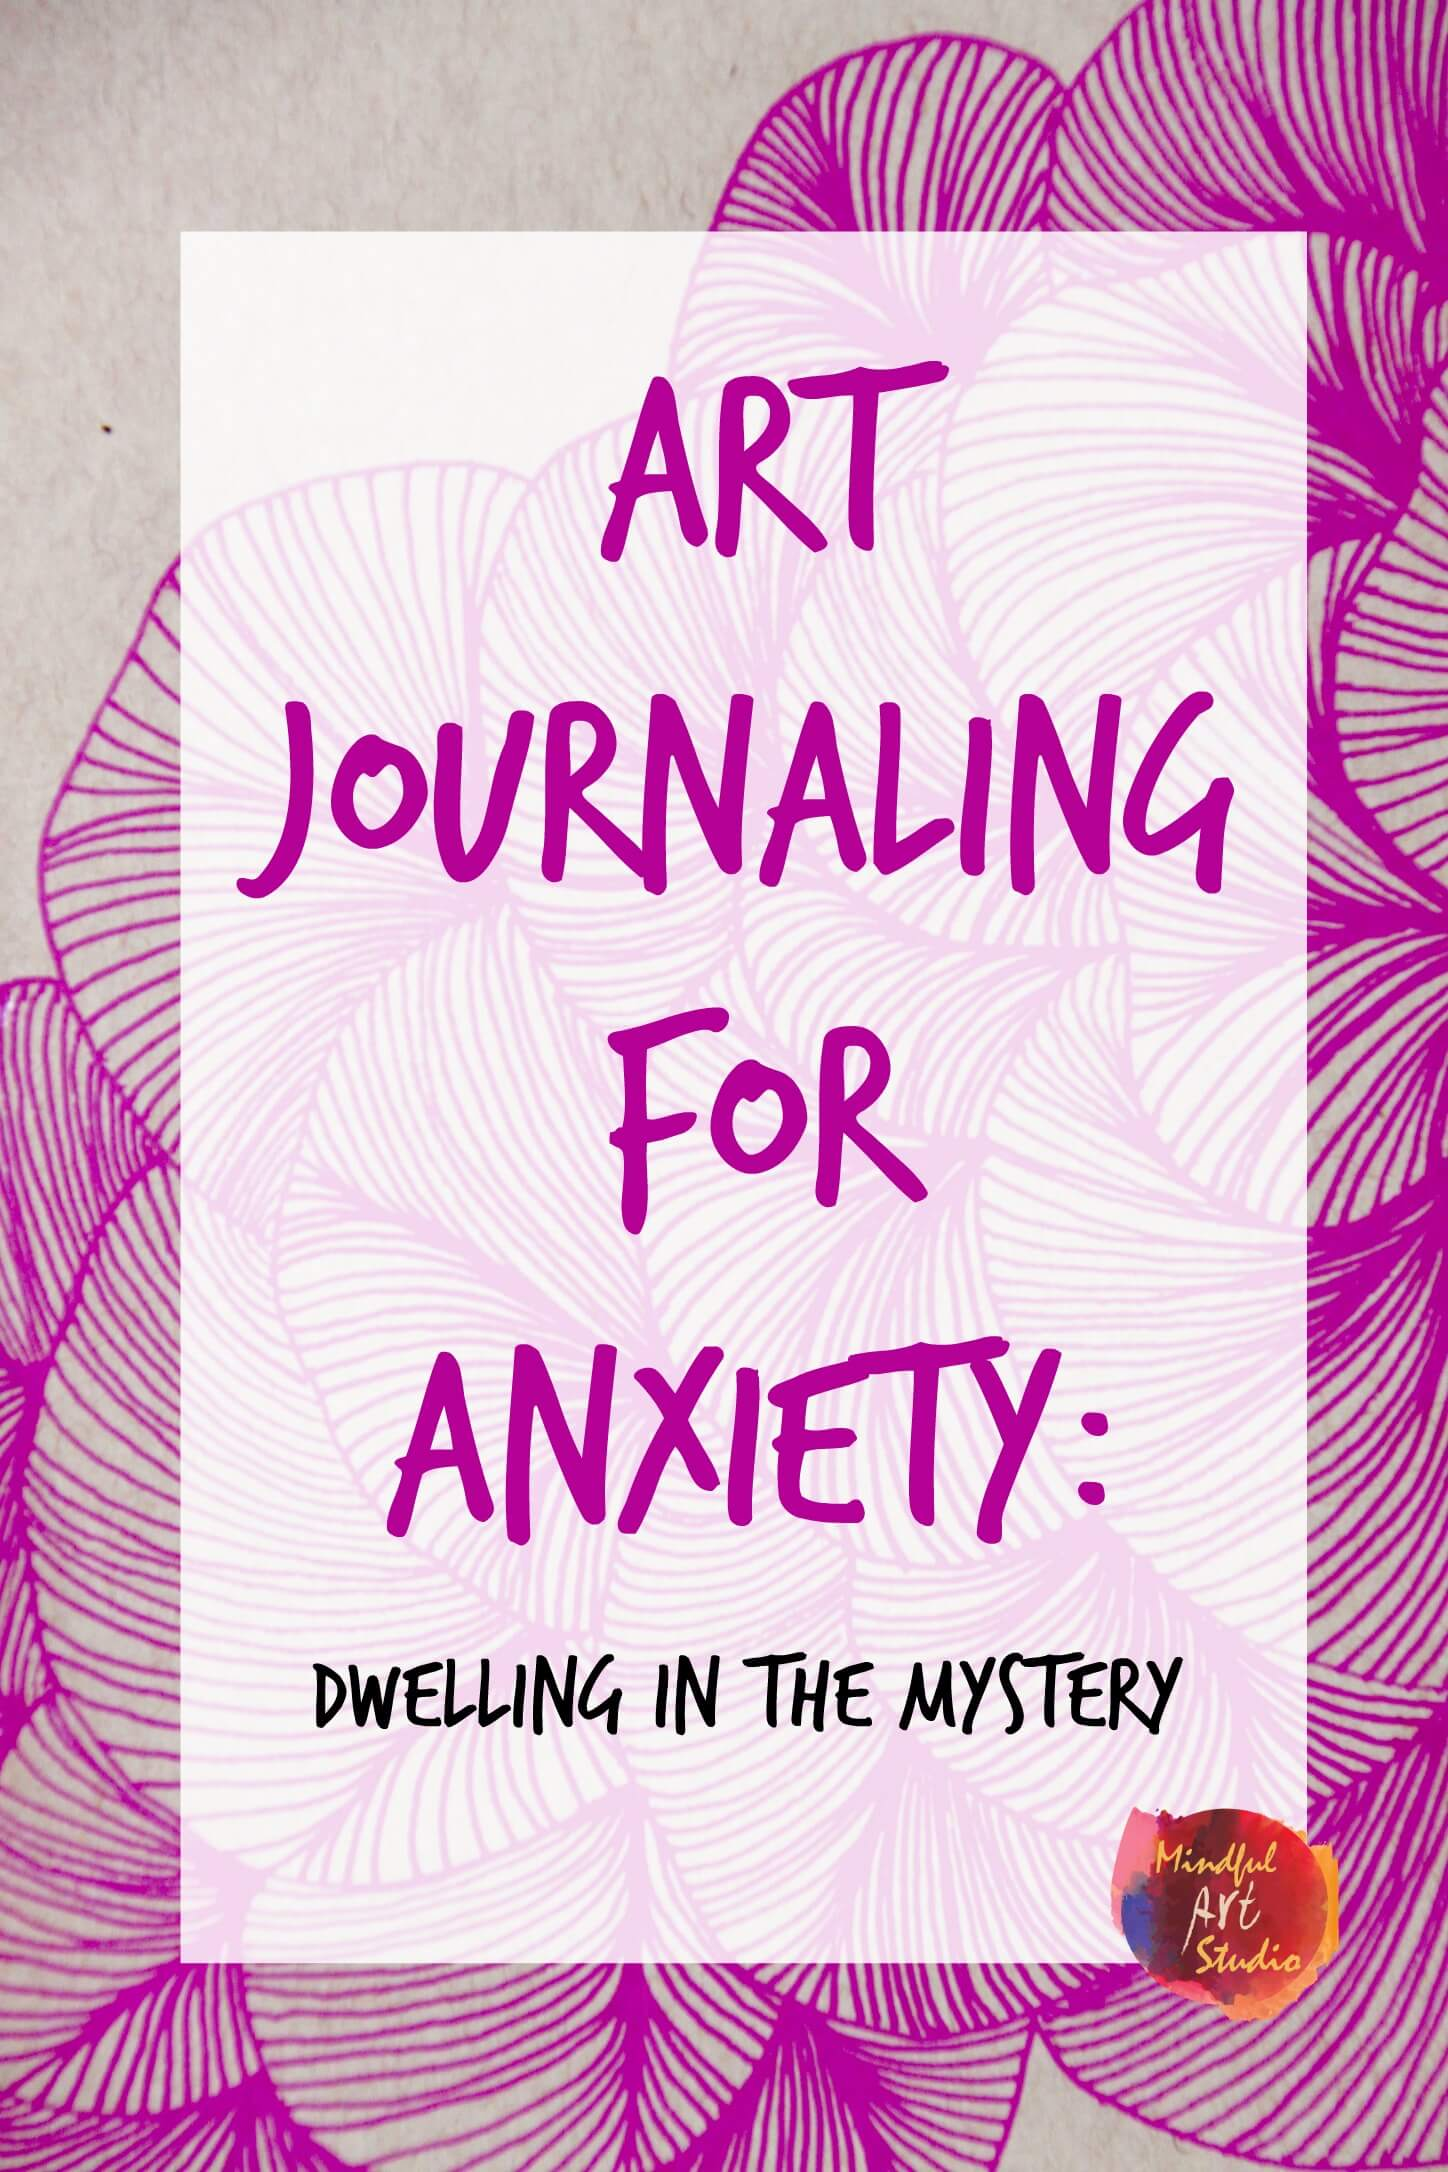 Mindful Art Studio Art Journaling And Mindful Creation From The Heart